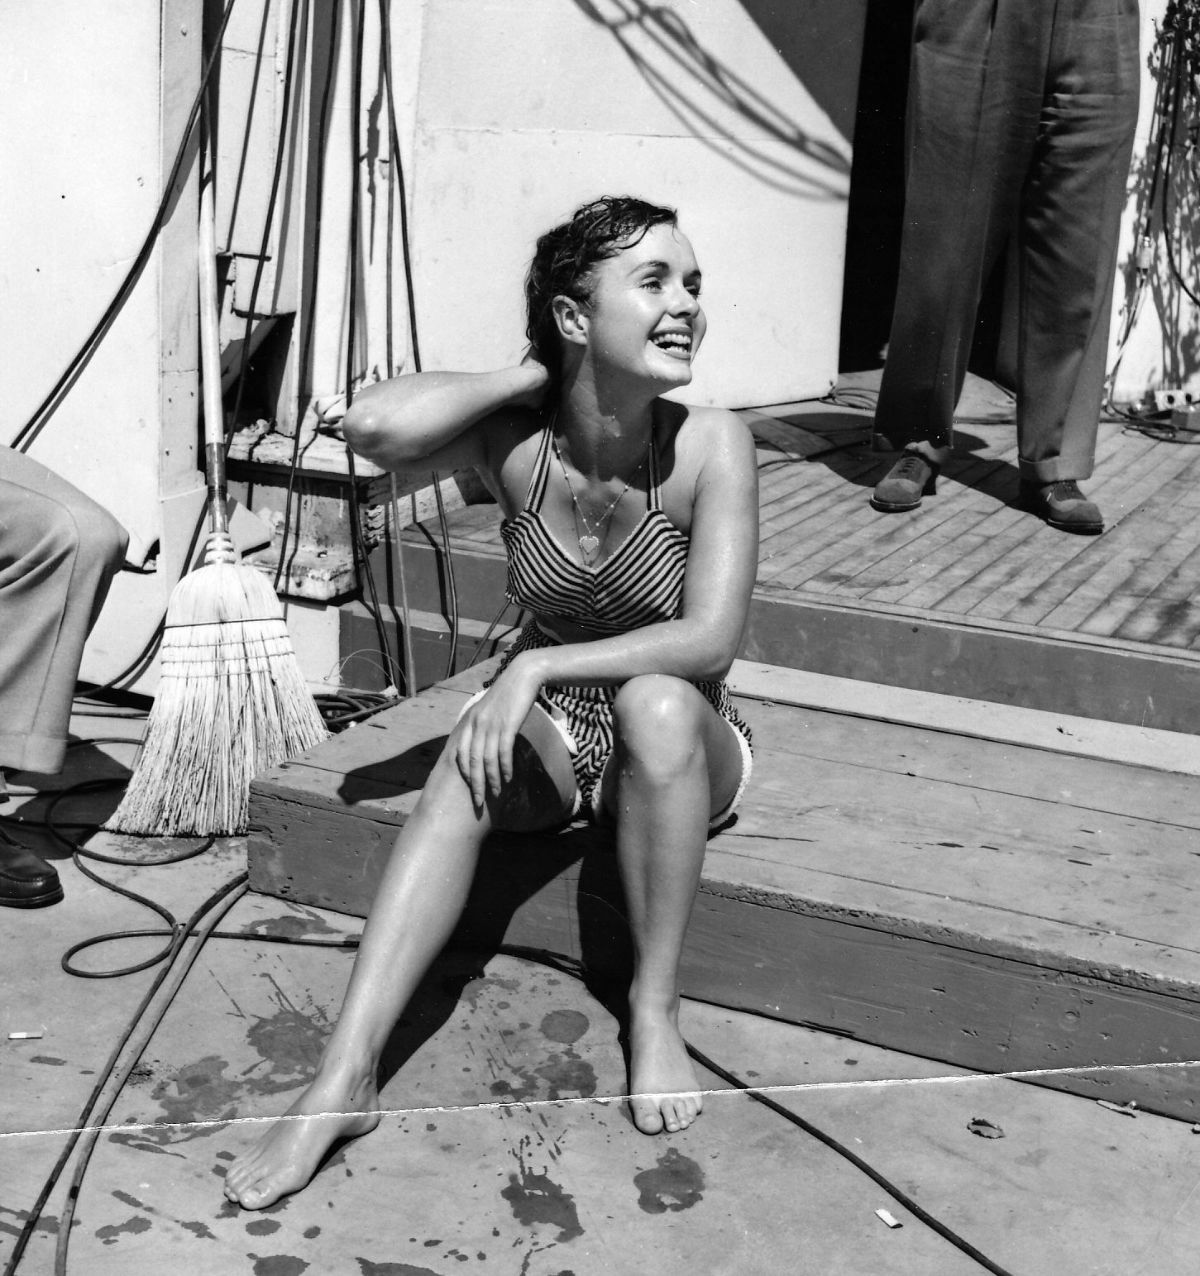 On the 1st anniversary of her death we selected a gallery of 40 wonderful black and white photographs of debbie reynolds in the 1950s and 1960s